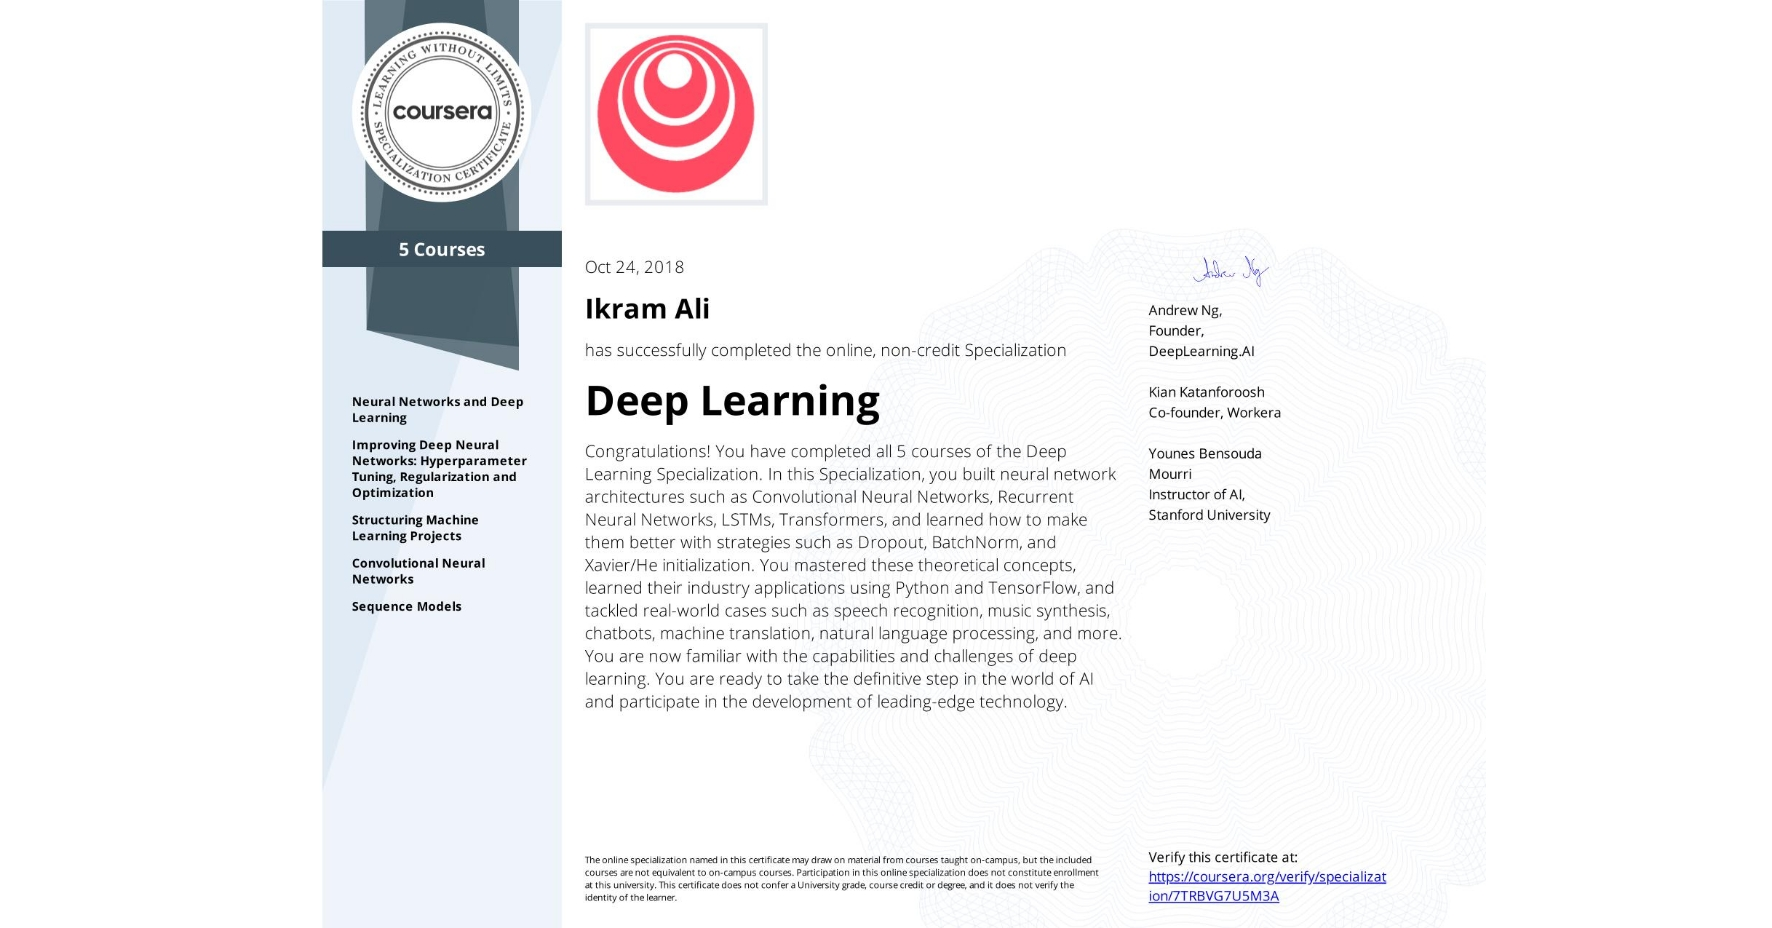 View certificate for Ikram Ali, Deep Learning, offered through Coursera. The Deep Learning Specialization is designed to prepare learners to participate in the development of cutting-edge AI technology, and to understand the capability, the challenges, and the consequences of the rise of deep learning. Through five interconnected courses, learners develop a profound knowledge of the hottest AI algorithms, mastering deep learning from its foundations (neural networks) to its industry applications (Computer Vision, Natural Language Processing, Speech Recognition, etc.).